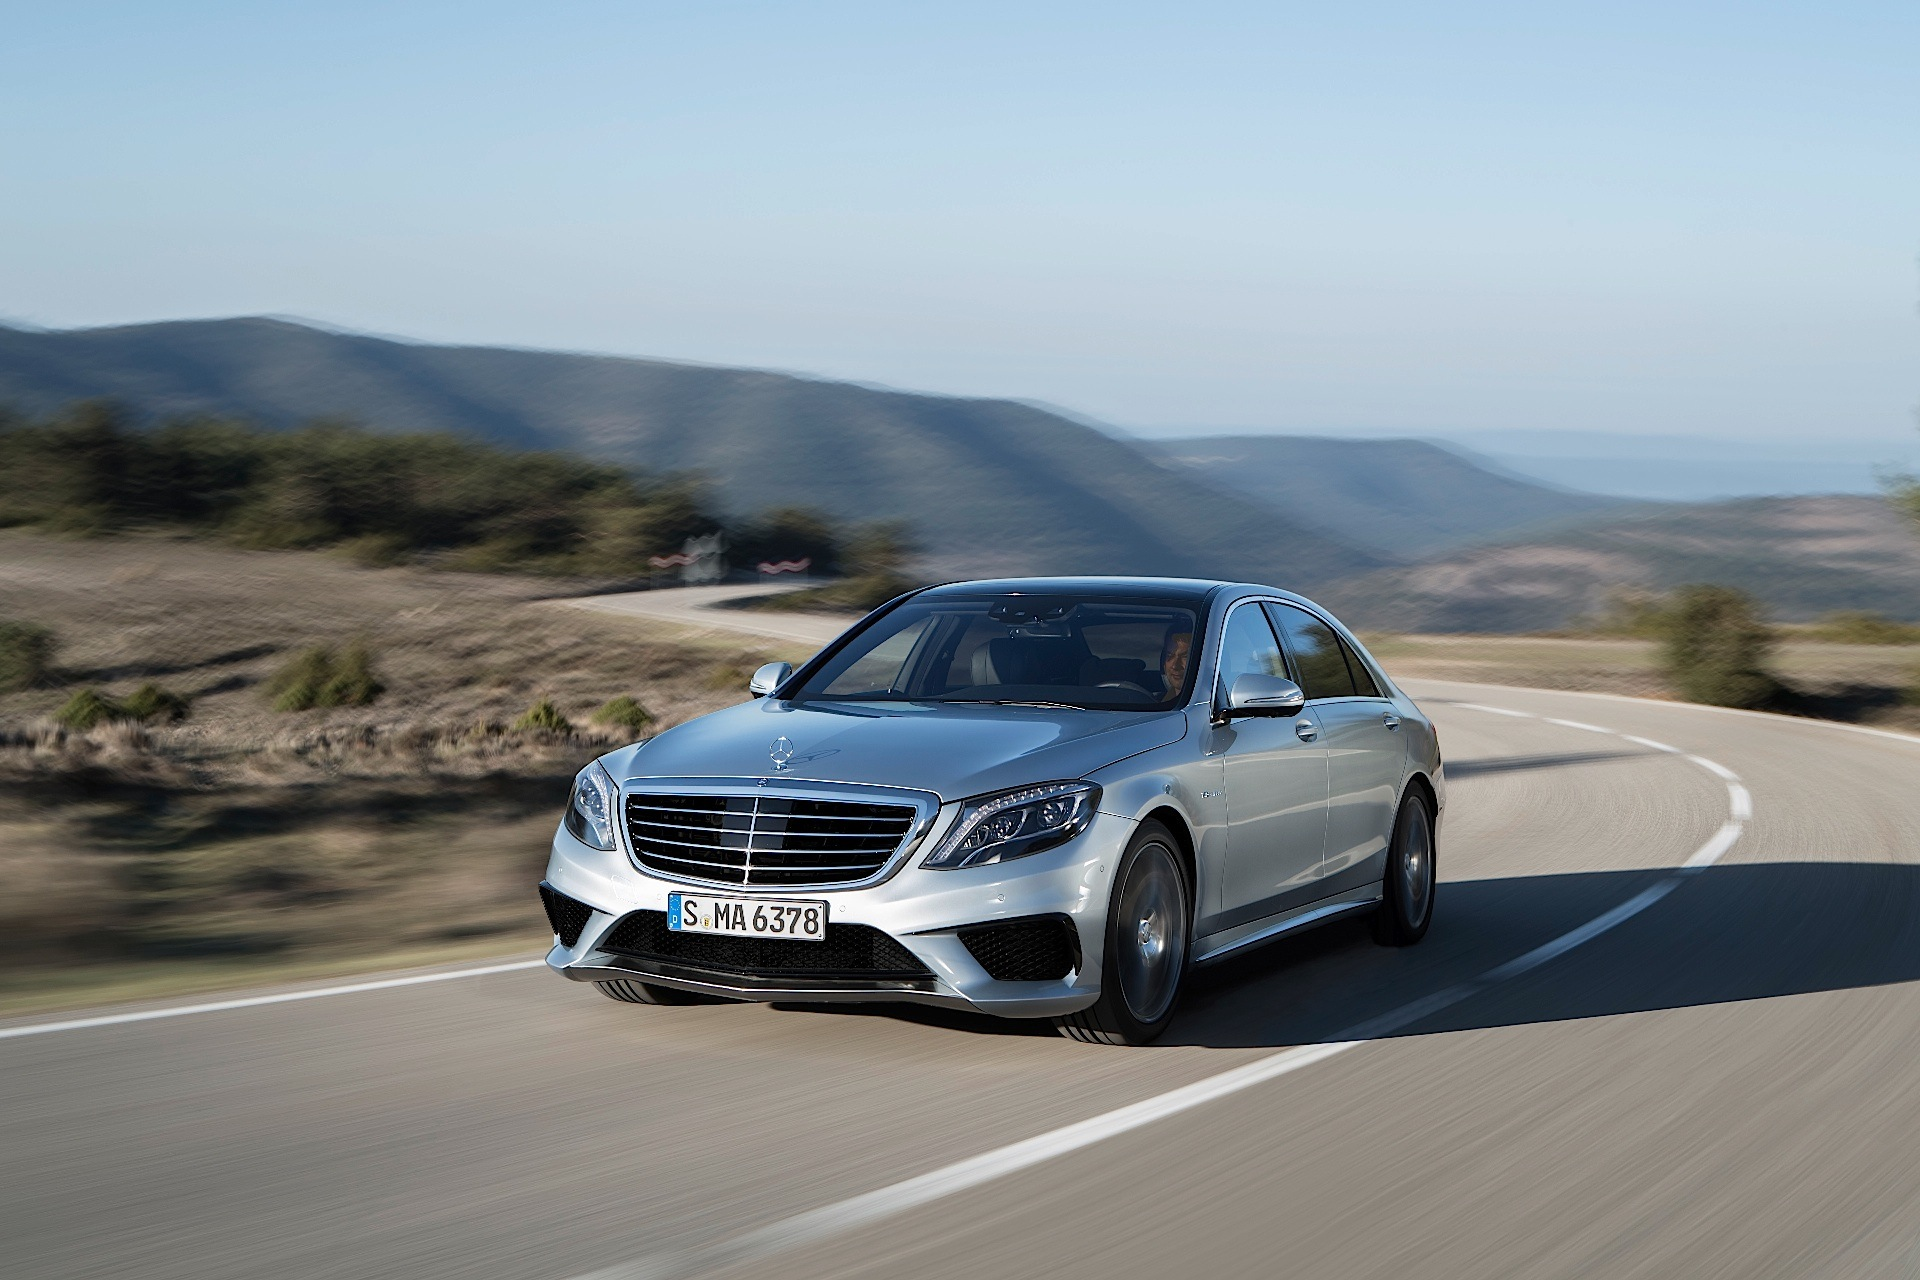 Mercedes benz s 63 amg w222 specs 2013 2014 2015 for Mercedes benz s500 amg